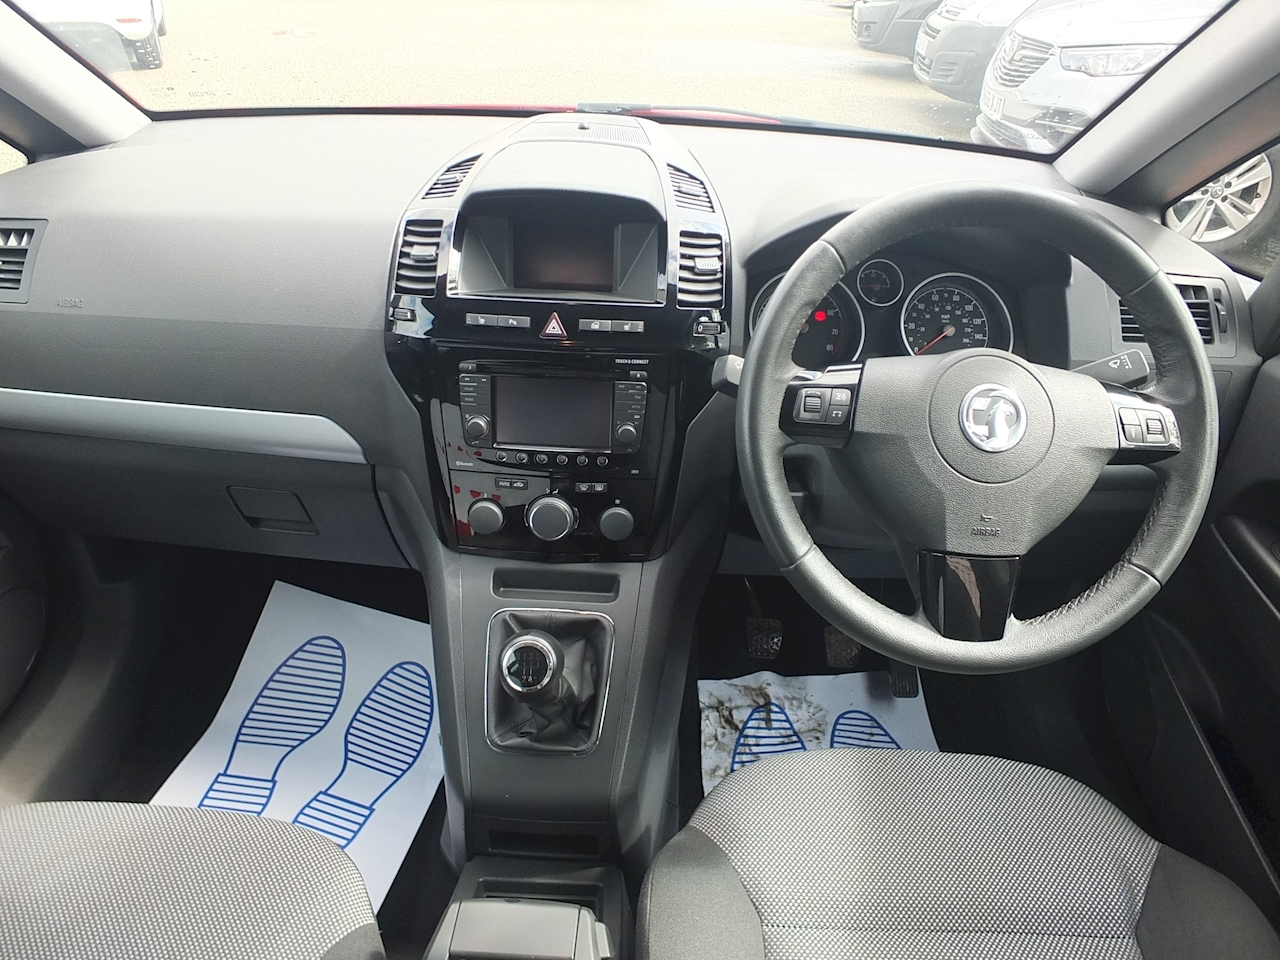 Zafira Design Nav Mpv 1.6 Manual Petrol